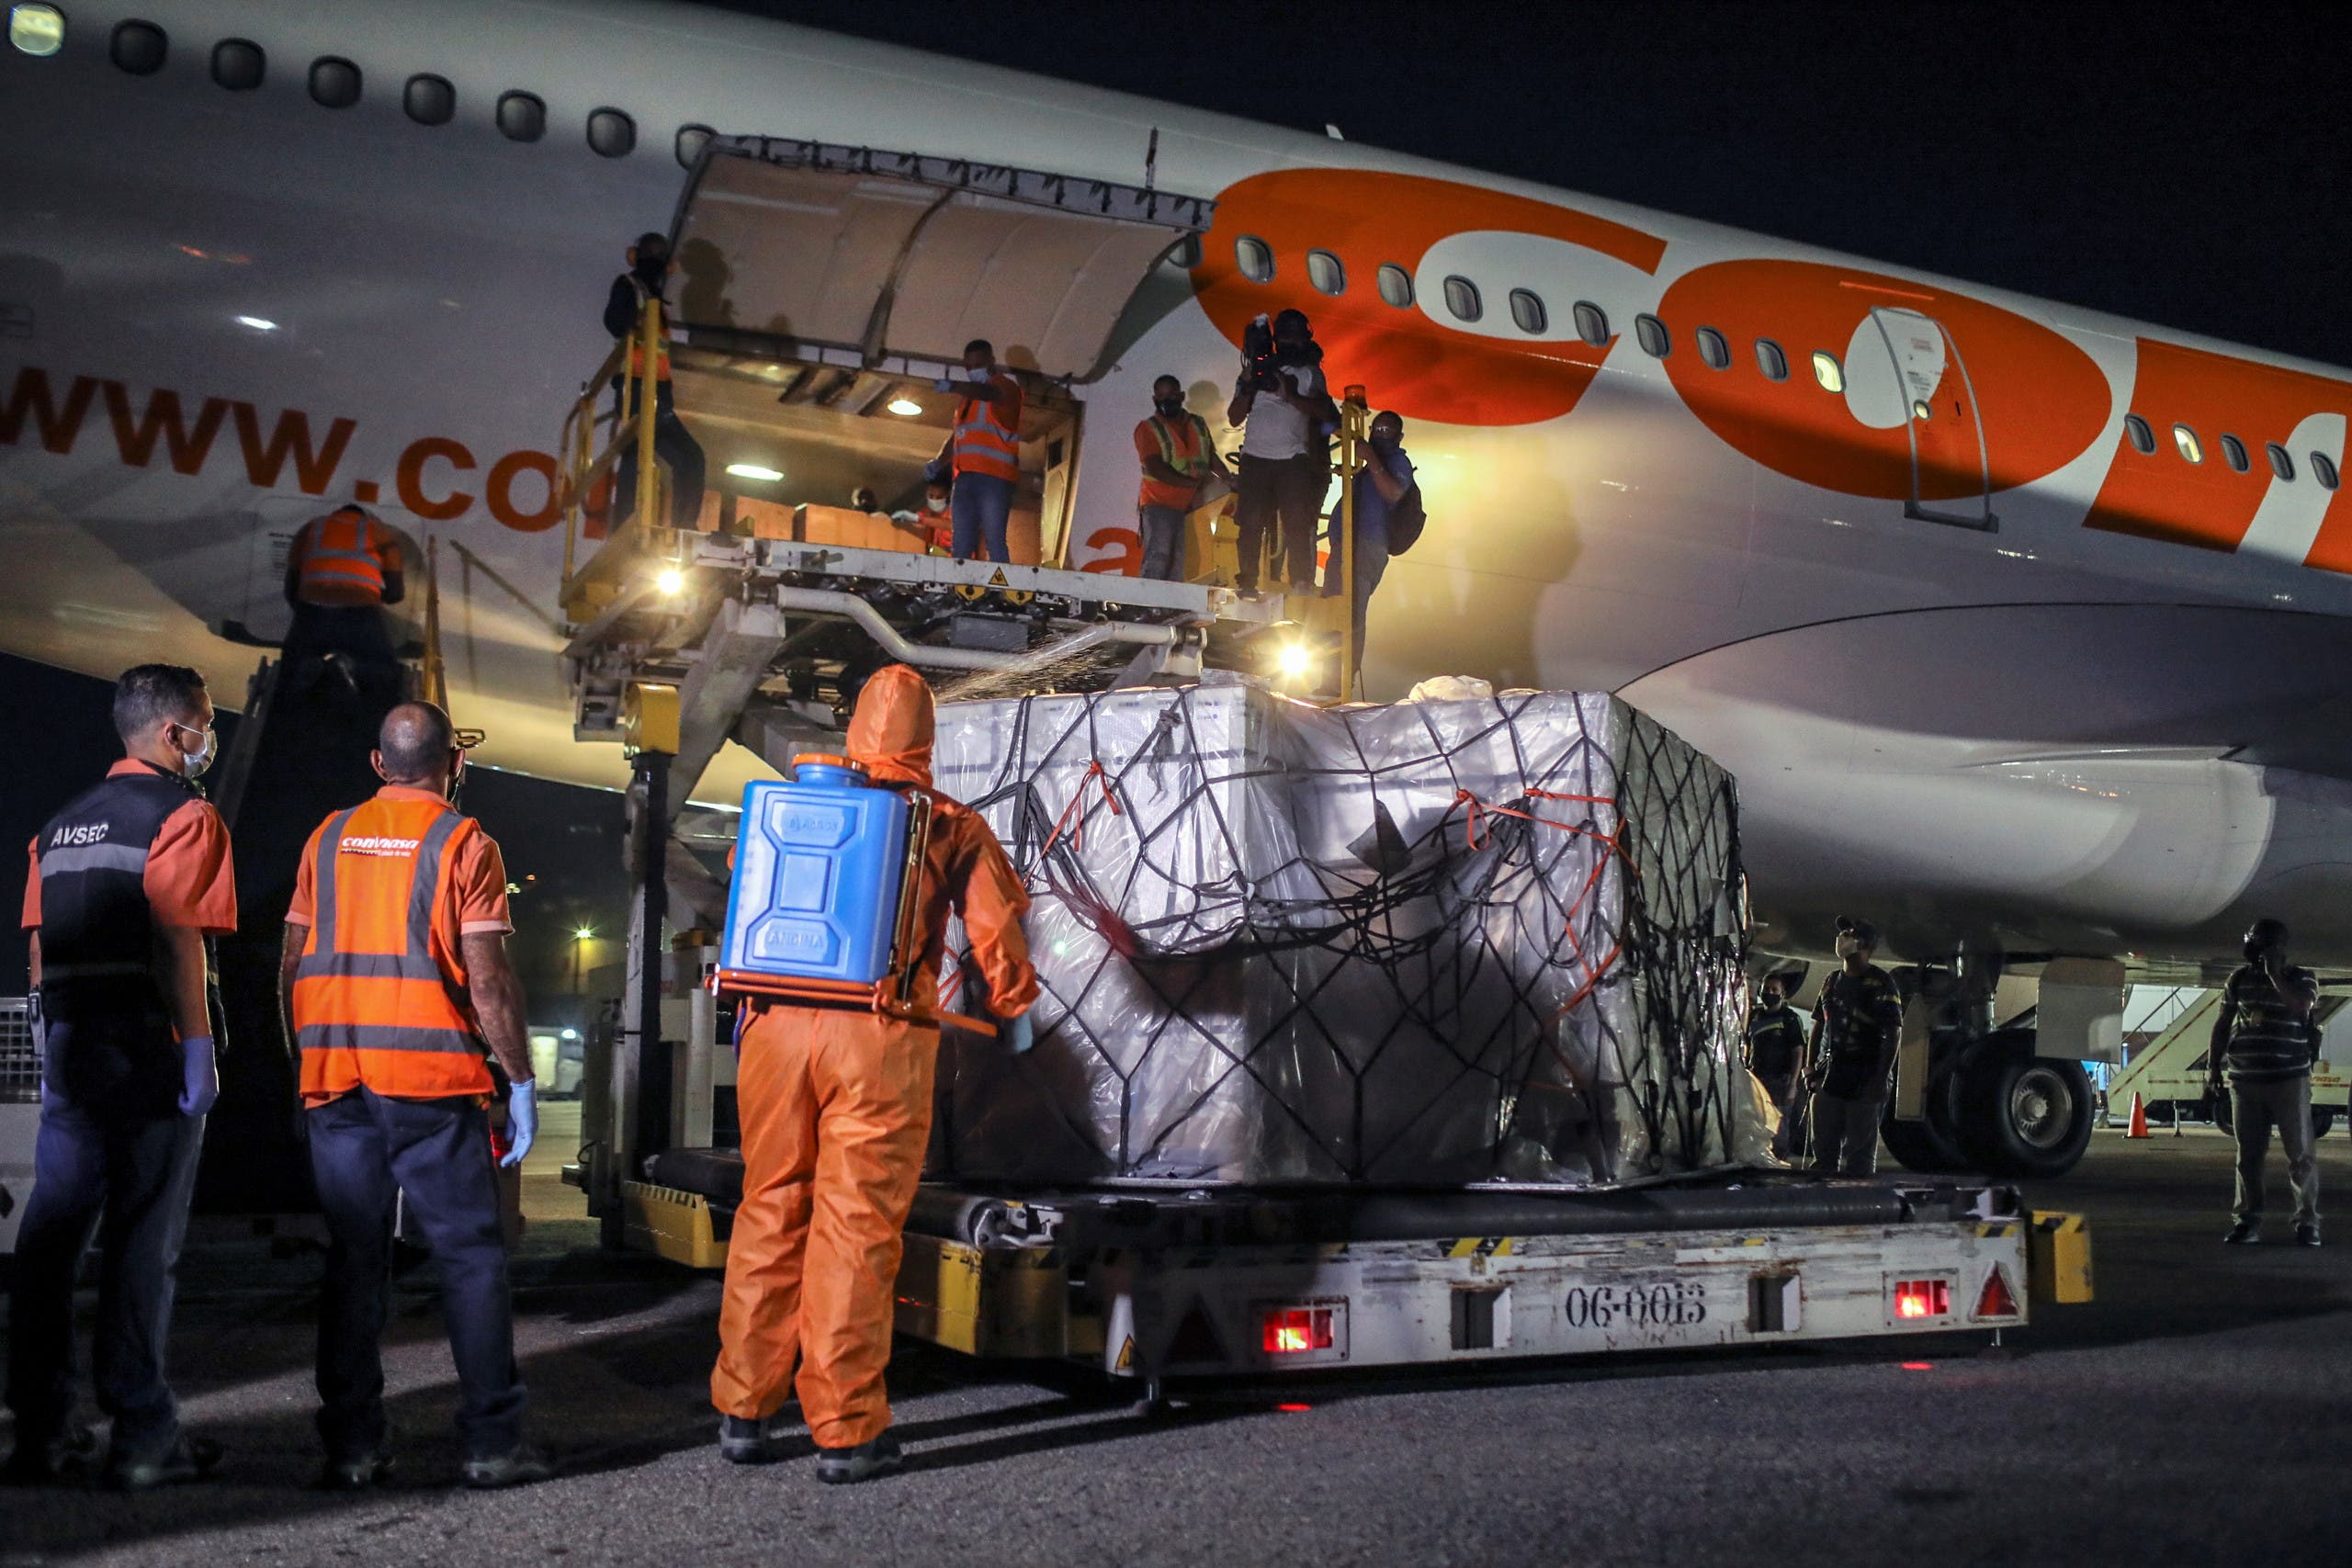 Boxes (in white) containing China's Sinopharm vaccine against the coronavirus disease (COVID-19) are unloaded from a plane upon arrival in Caracas, Venezuela March 1, 2021. (Reuters)